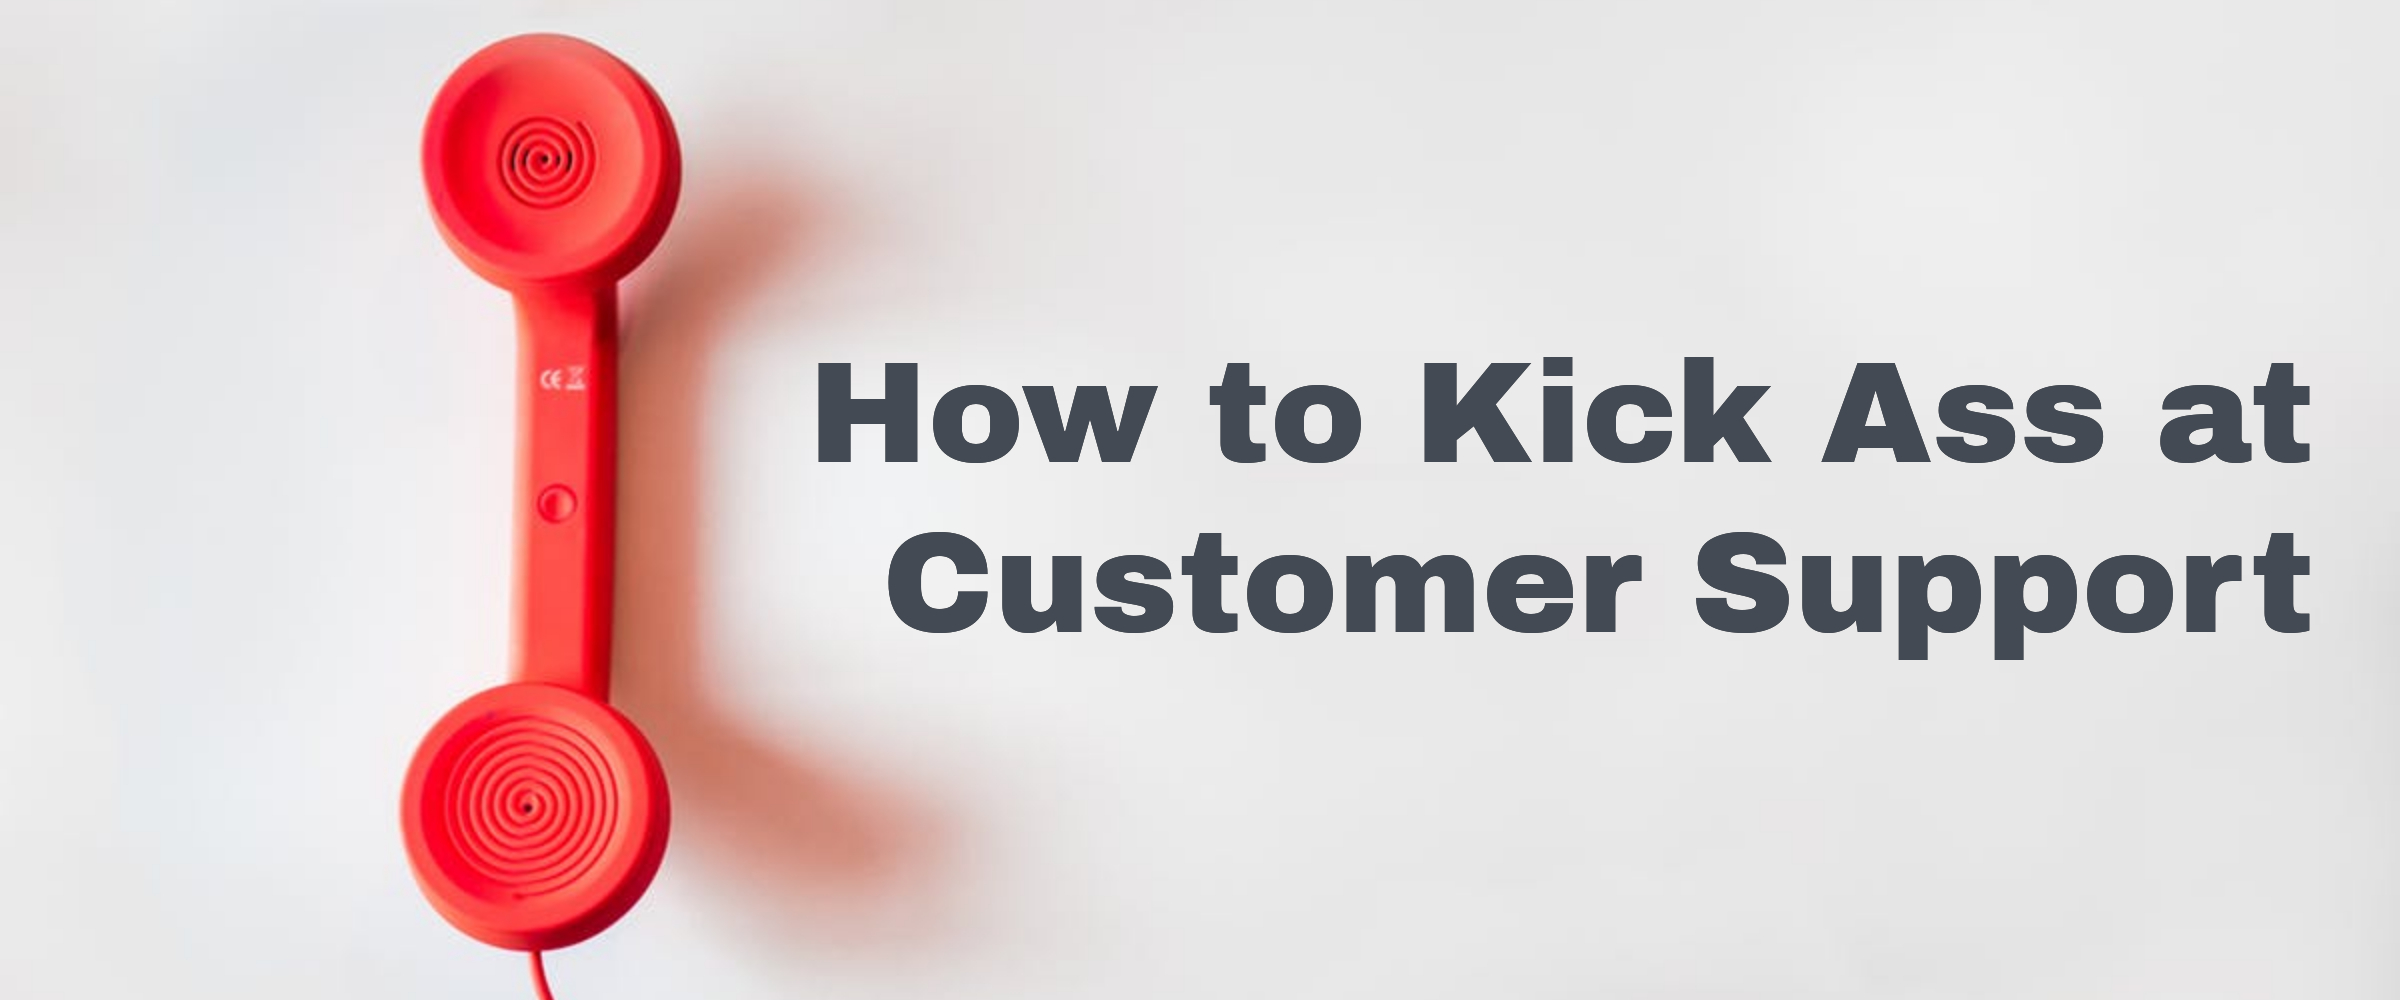 How to Kick Ass at Customer Support